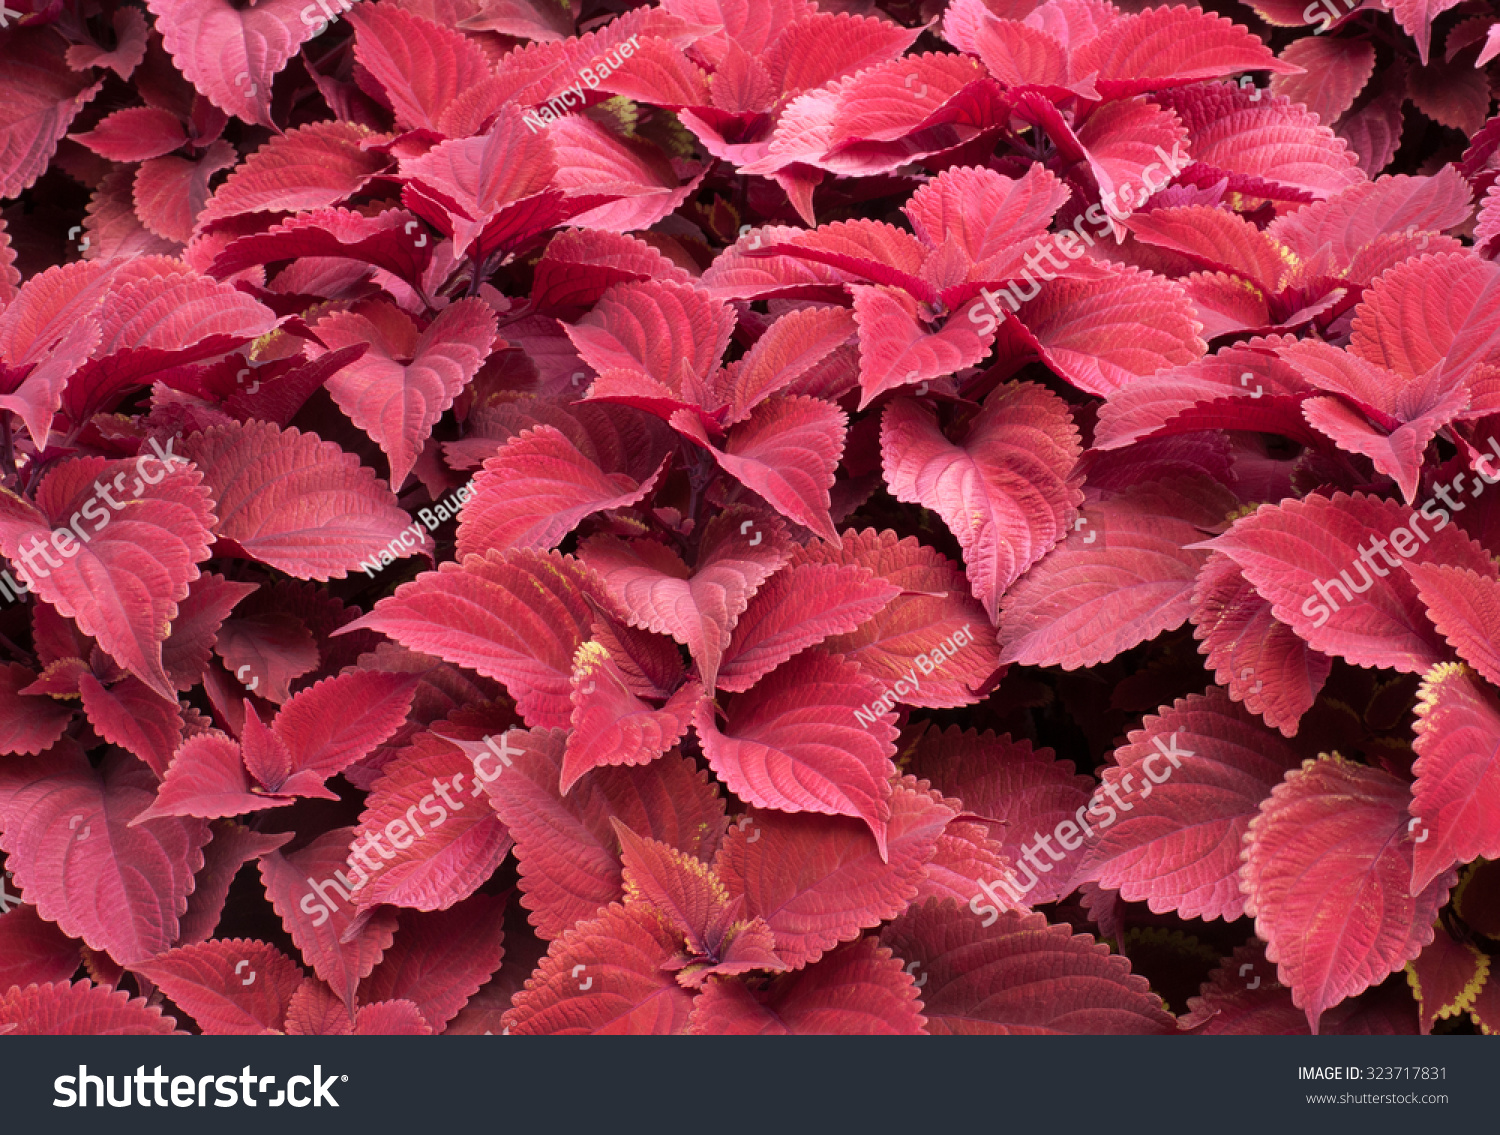 bright red leaves red coleus plants stock photo, Natural flower